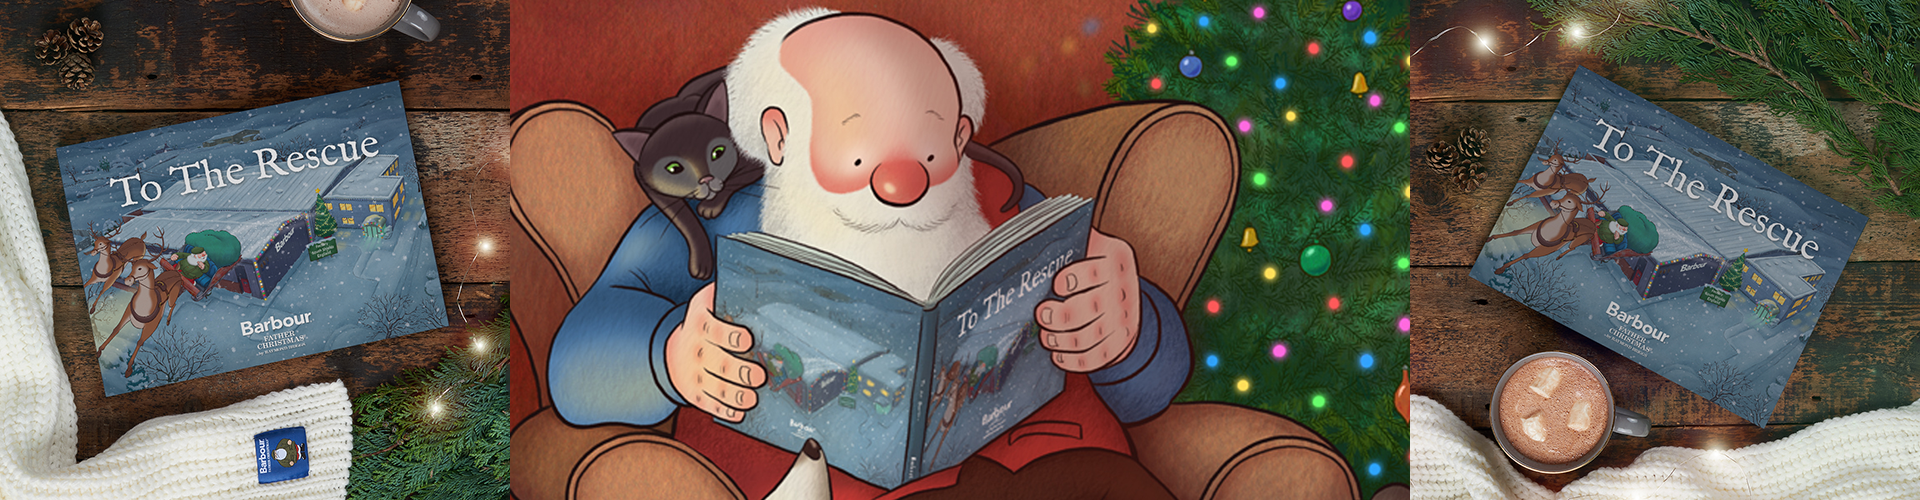 Barbour Christmas Storybook Competition